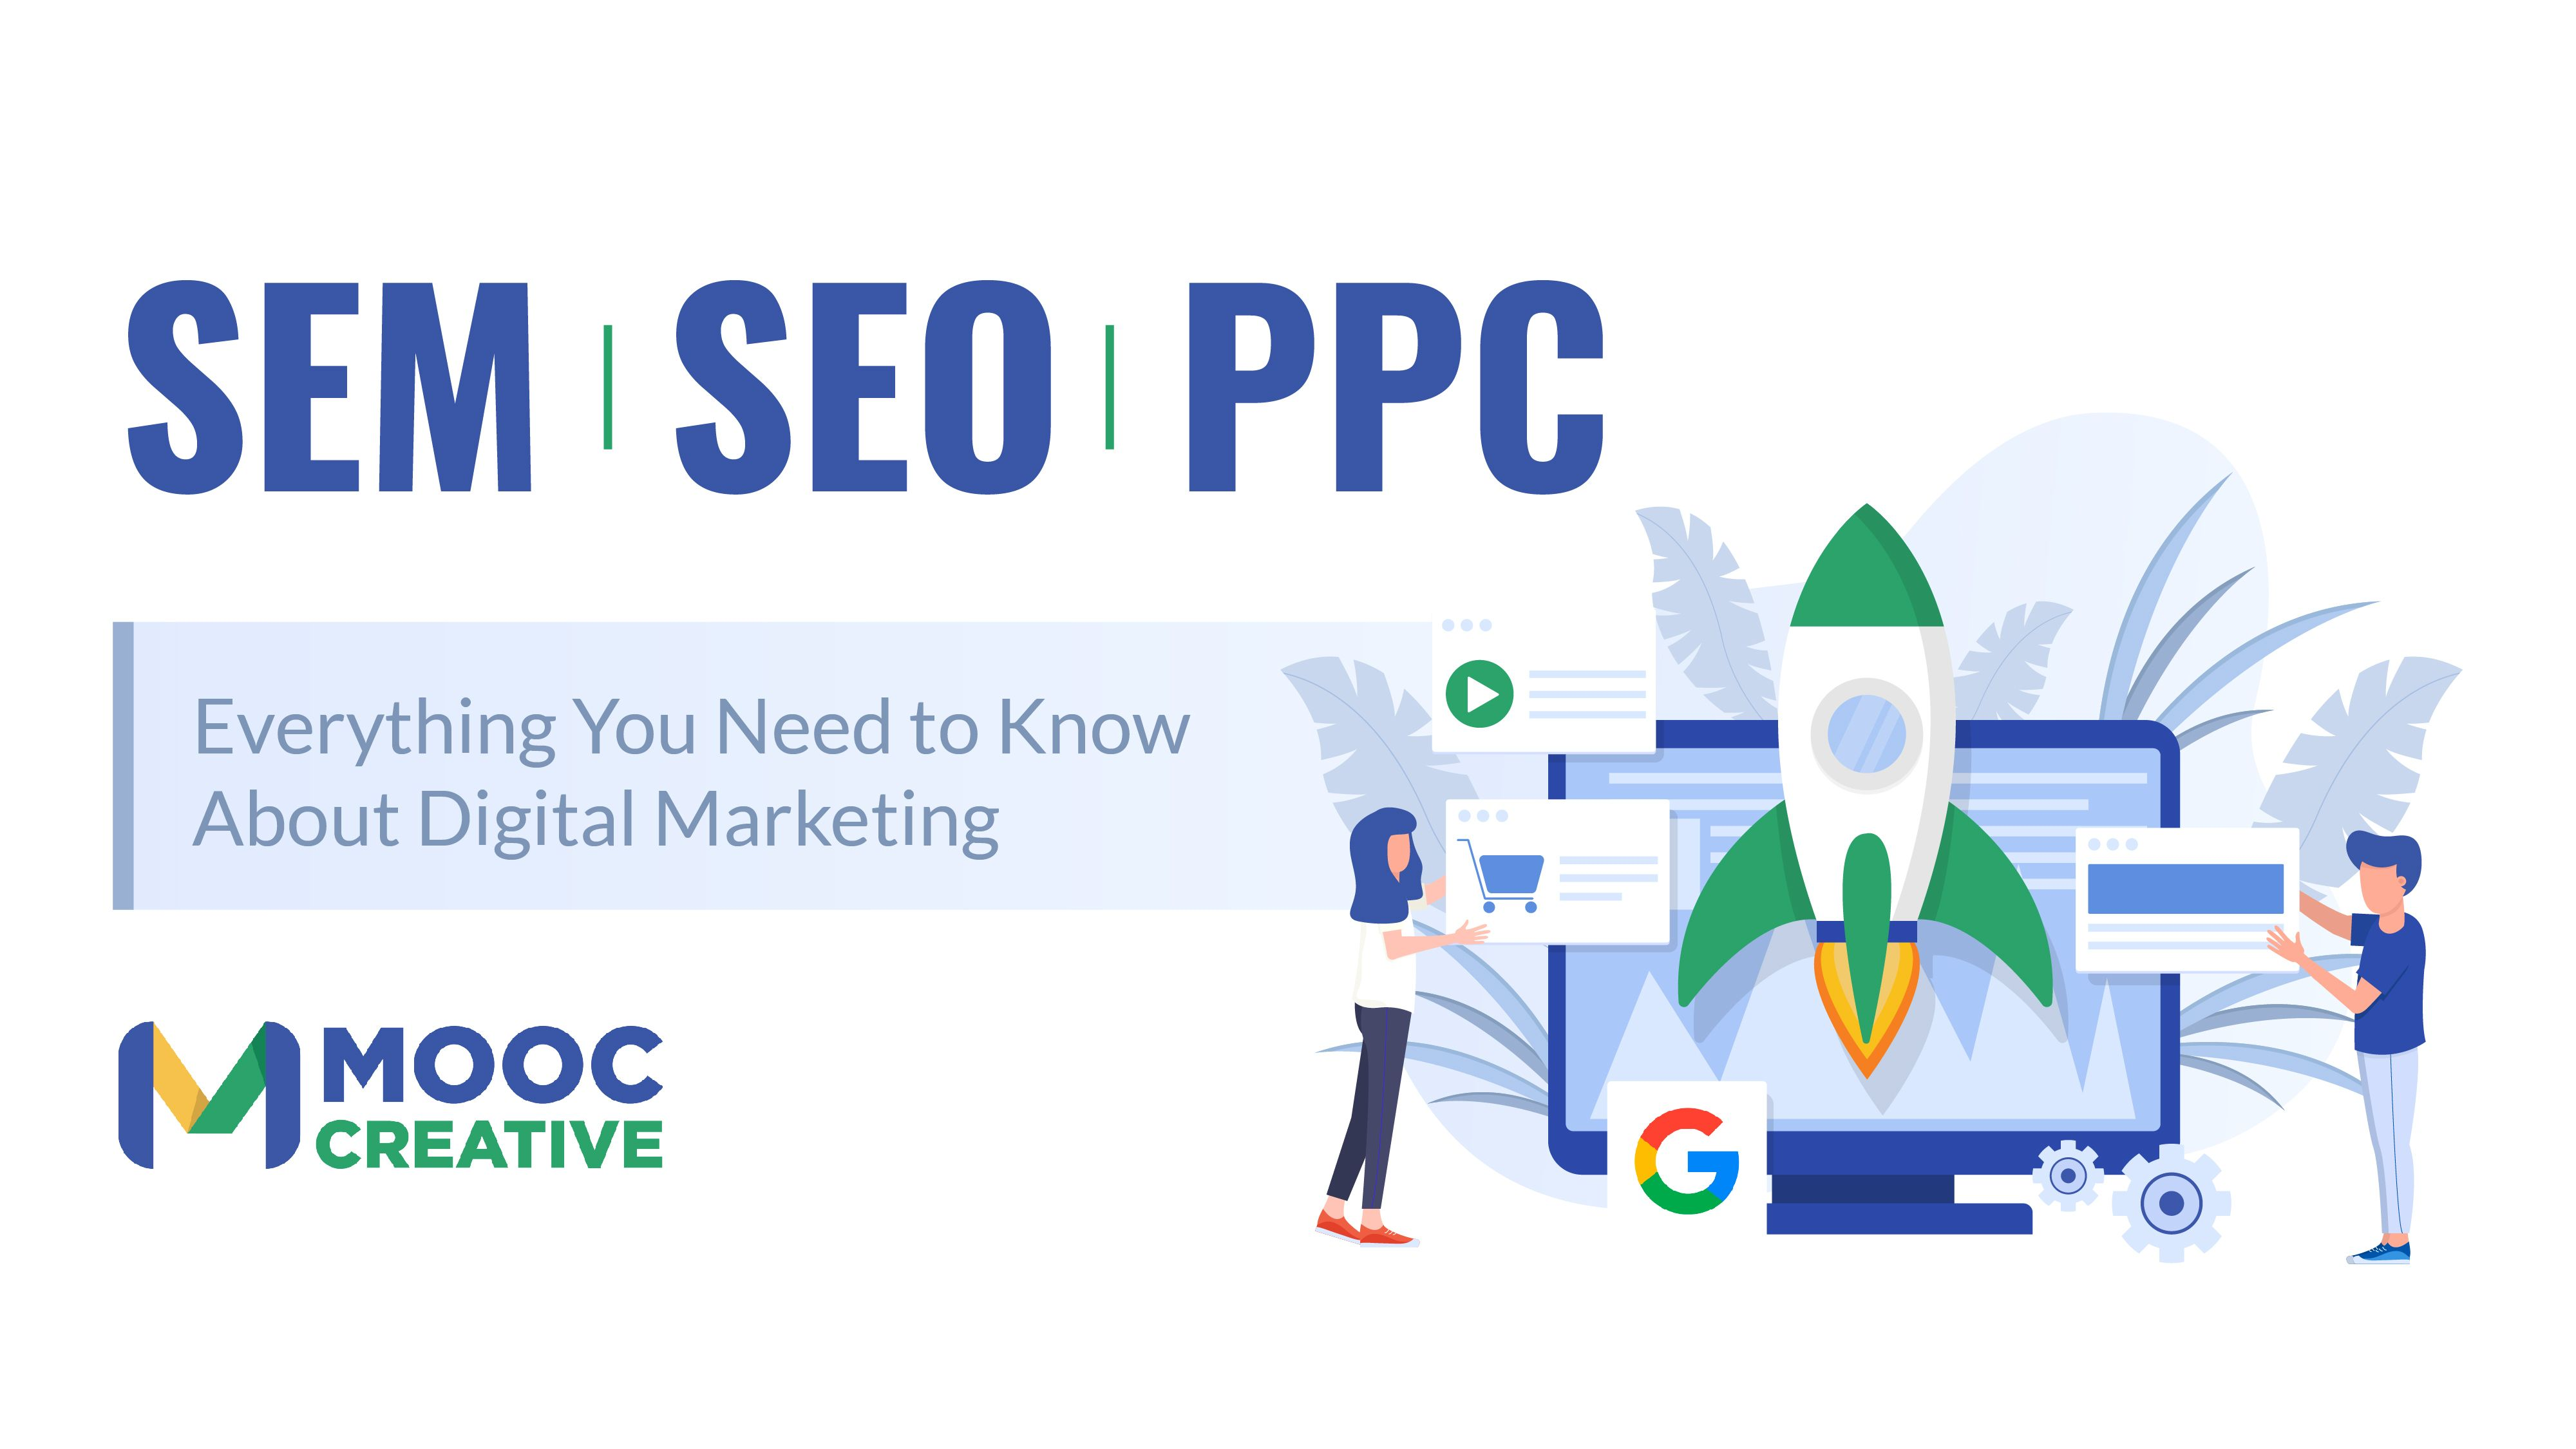 SEM vs SEO vs PPC Everything you need to know about digital marketing by MOOC Creative